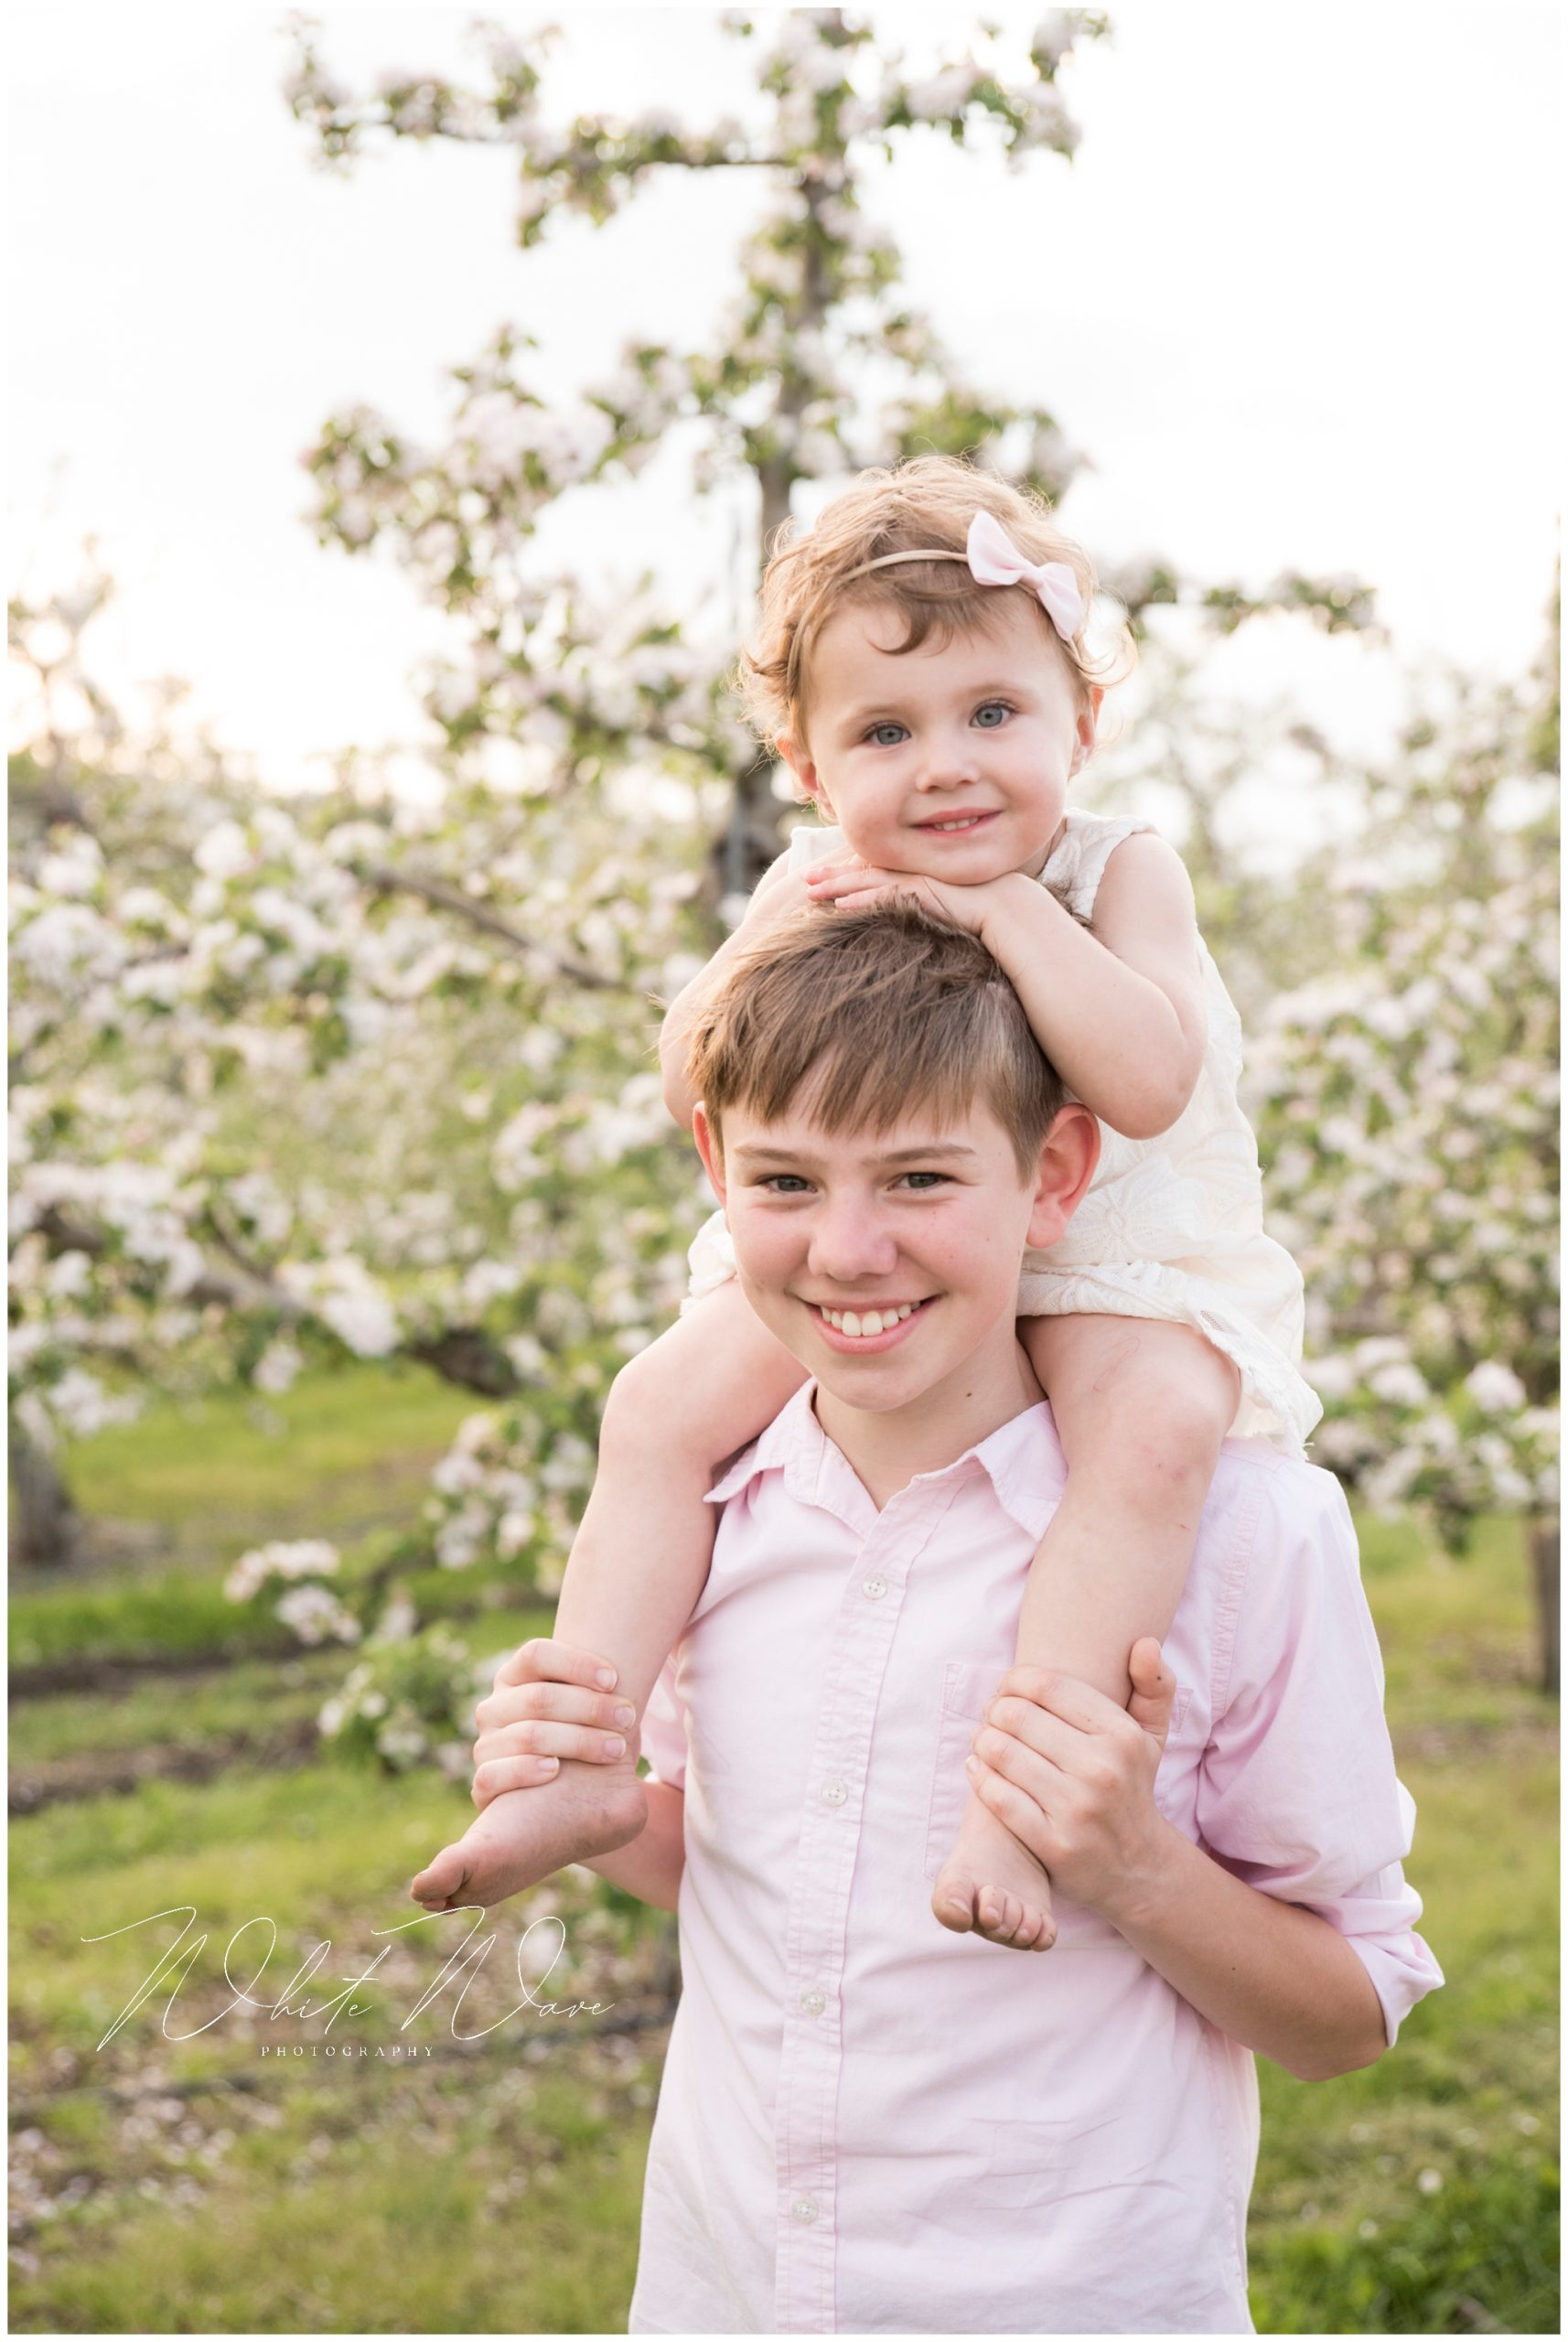 creating the perfect look for your spring family portrait session